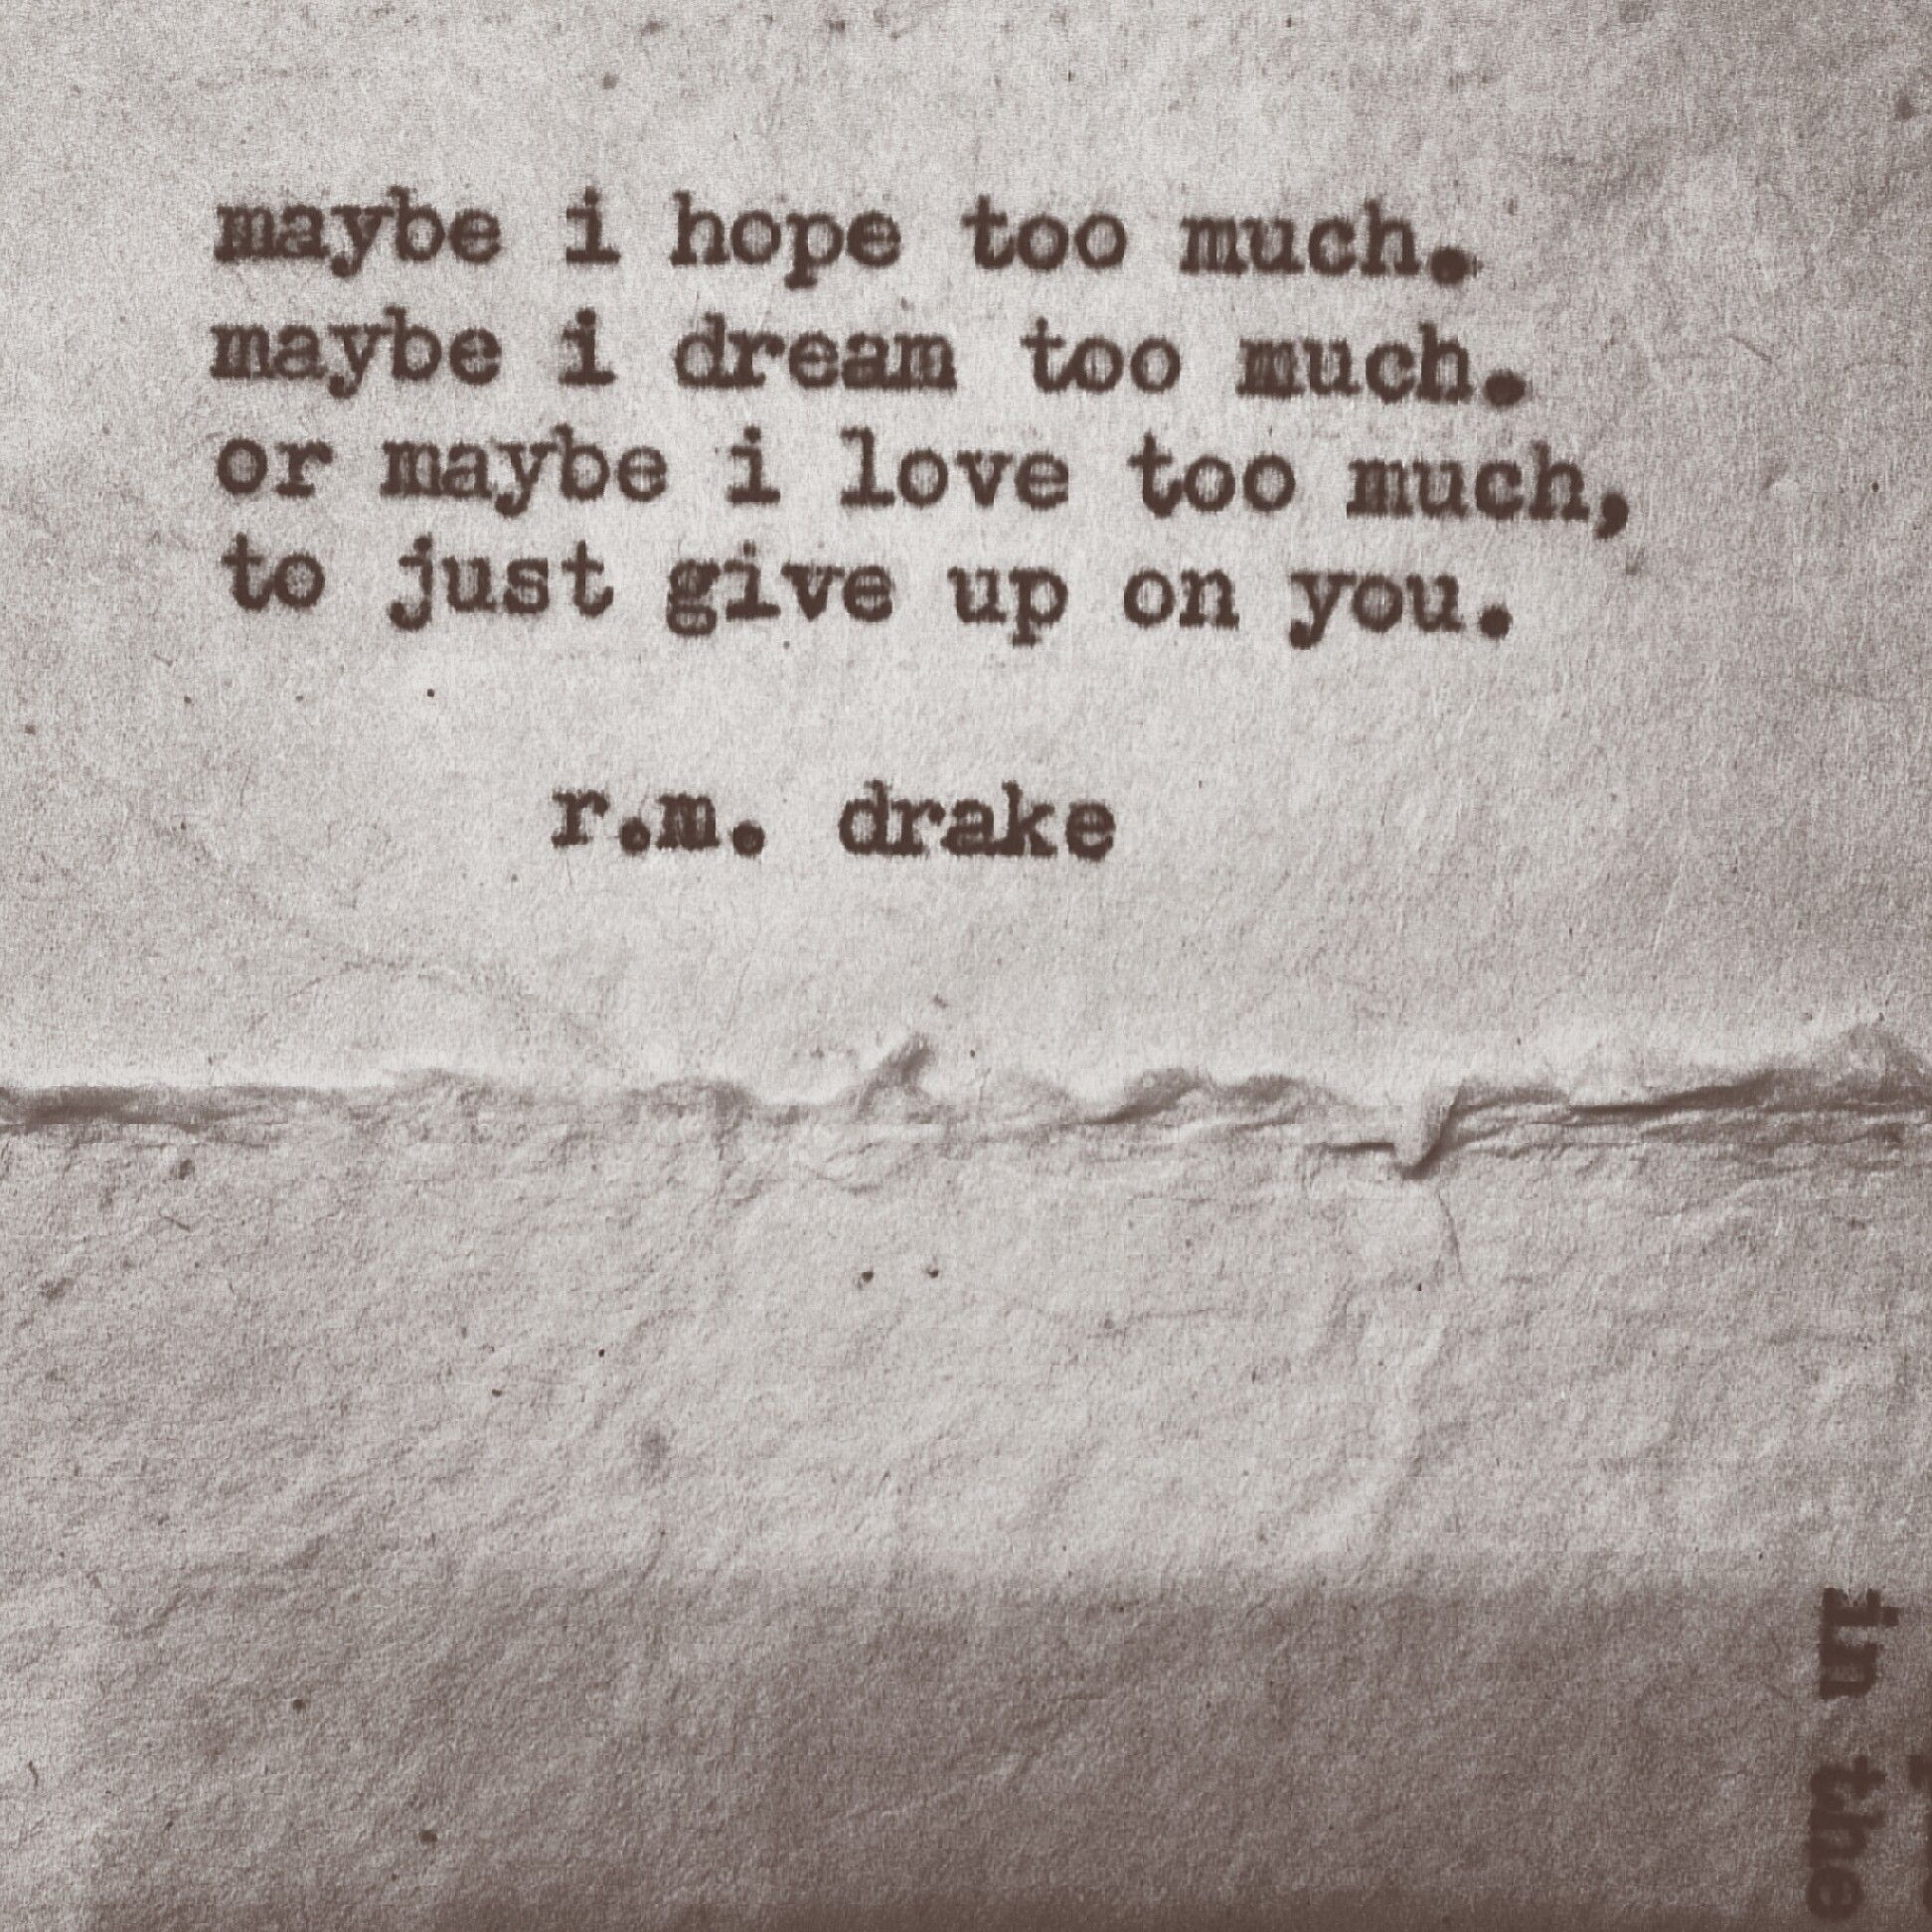 My greatest love, it is time to give up.